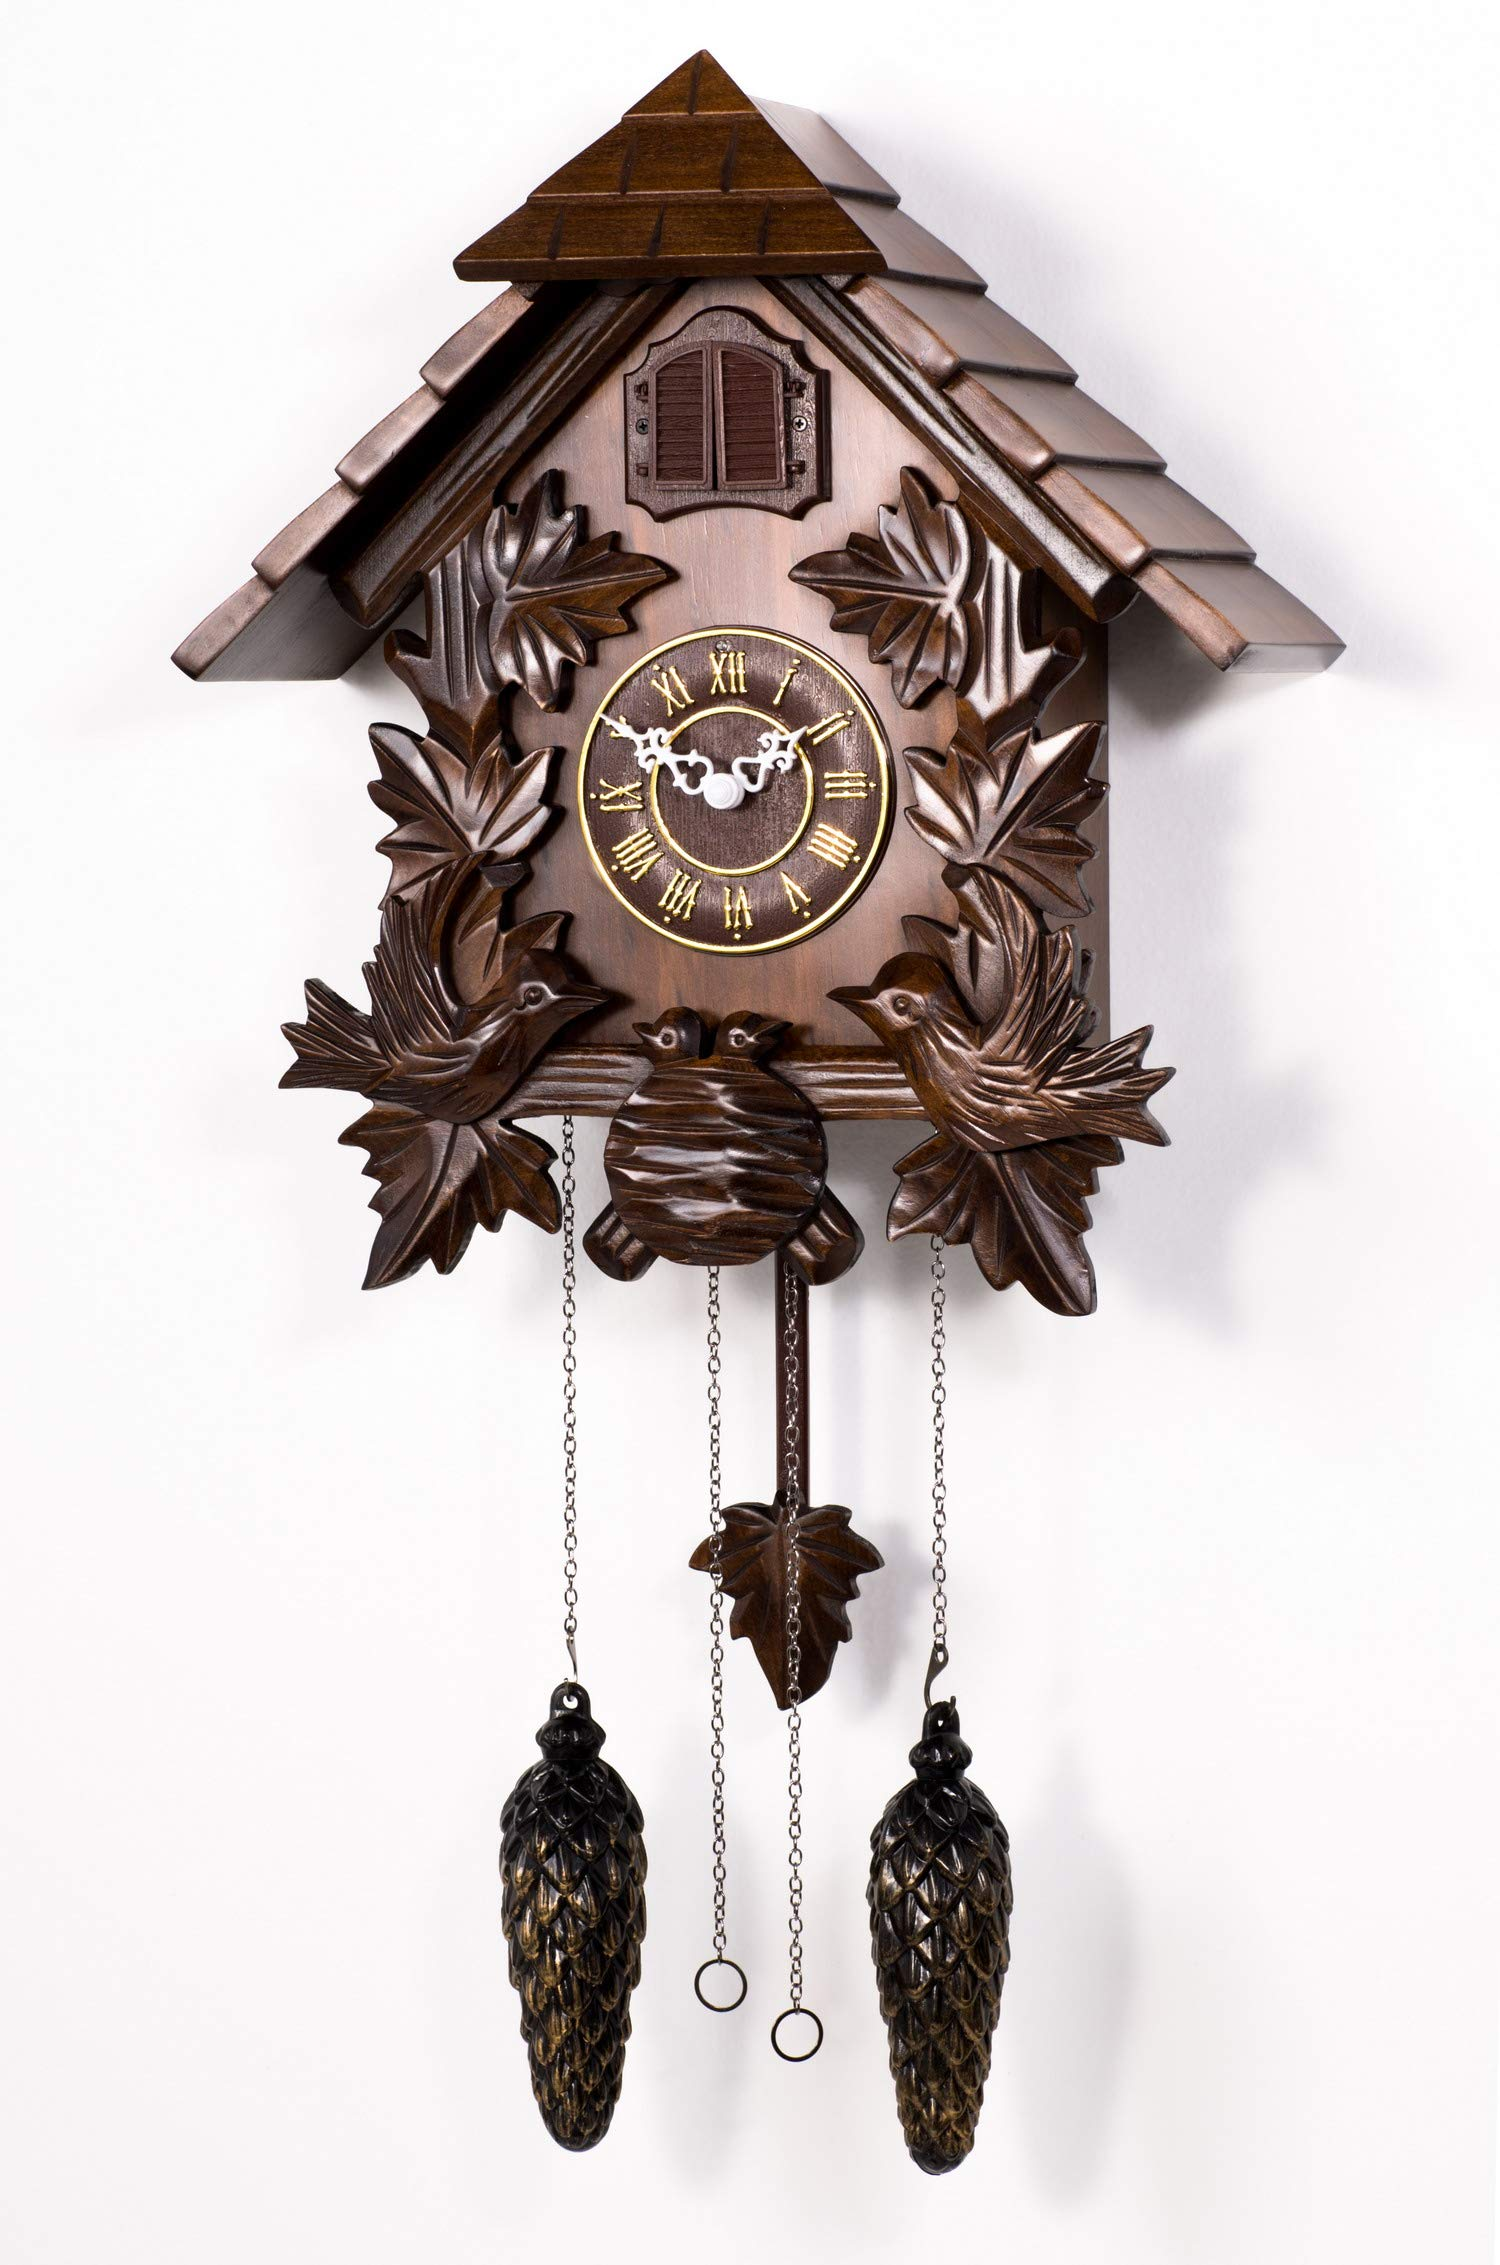 Polaris Clocks Cuckoo Wall Clock with Night Mode Option in Black Forest Style (Brown, 16'' Size)